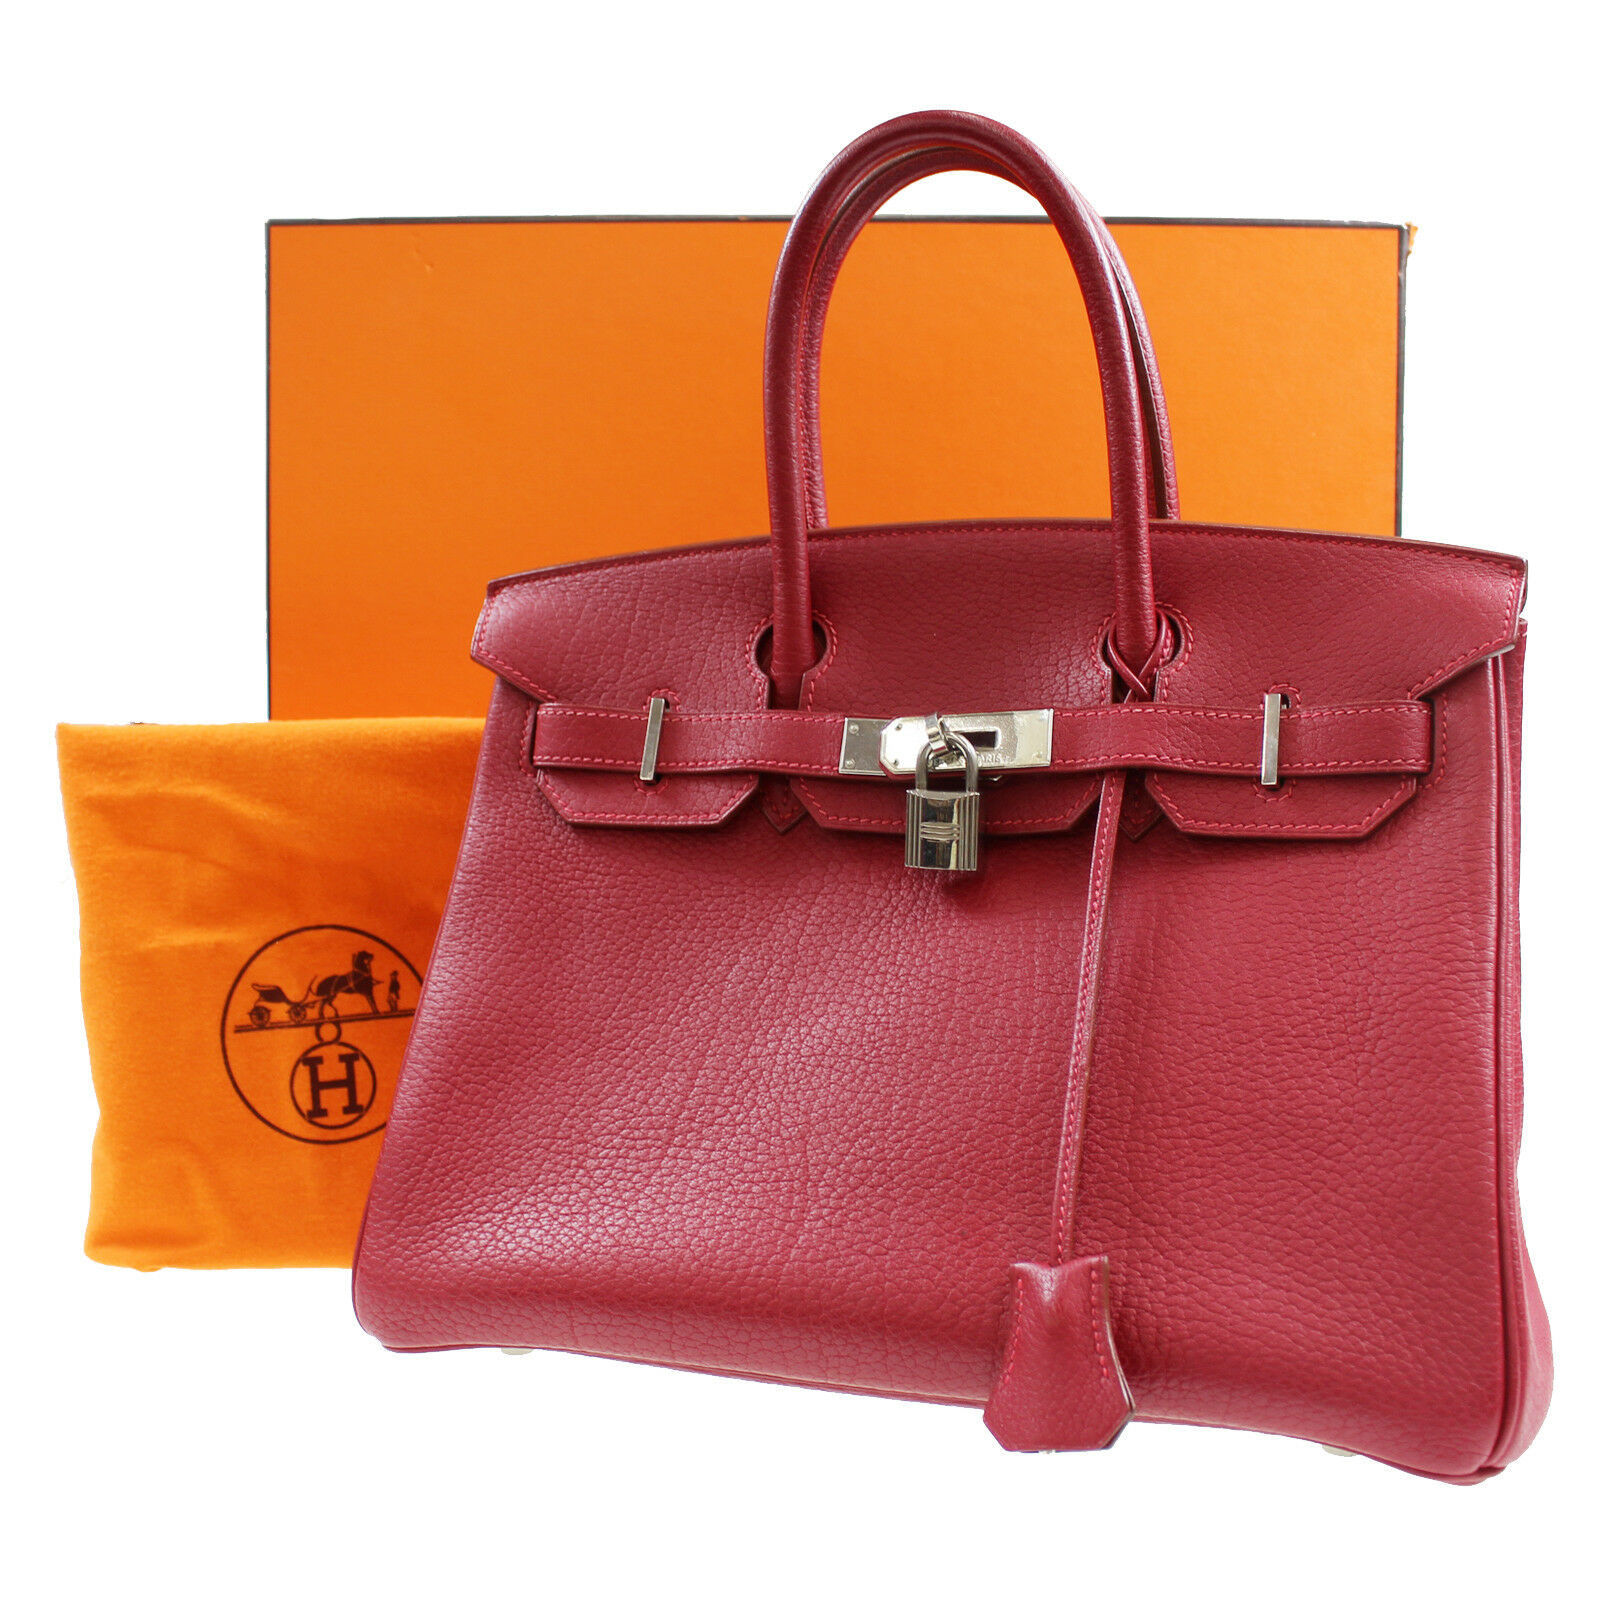 557ebd903e HERMES Birkin 30 Hand Tote Bag Red Togo Leather Vintage France Authentic   Z55 M